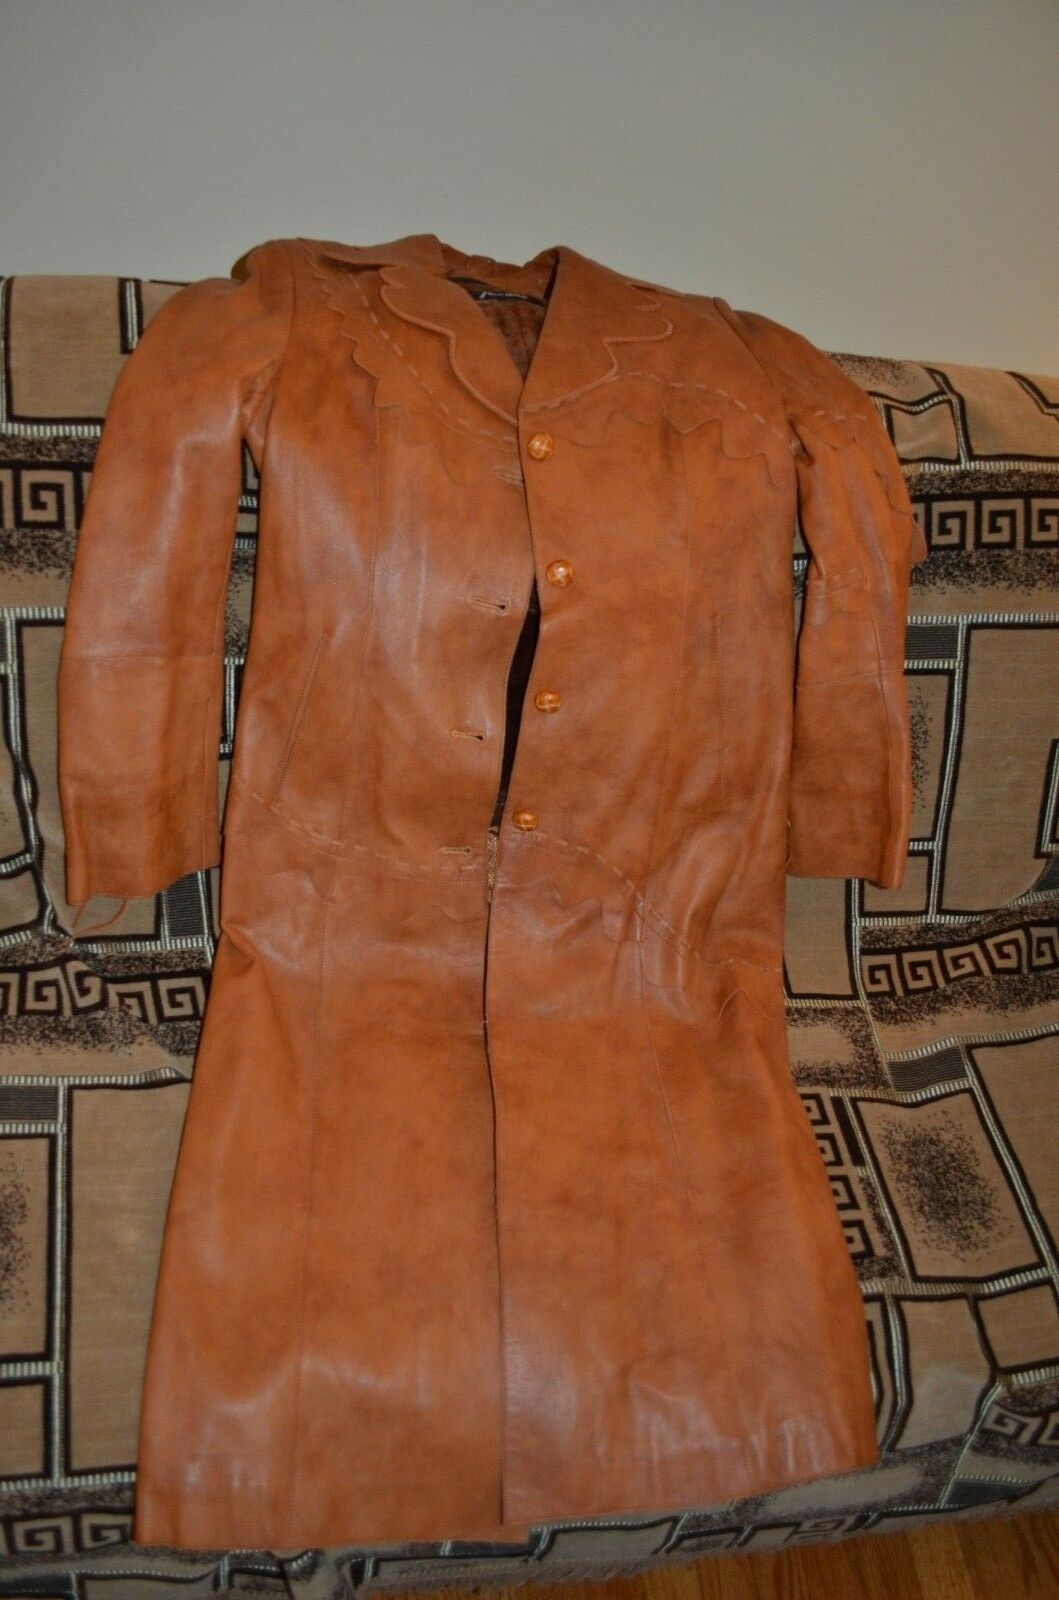 AMADO genuine leather leather leather embellish coat Size S Small w removable faux fur vest 800827